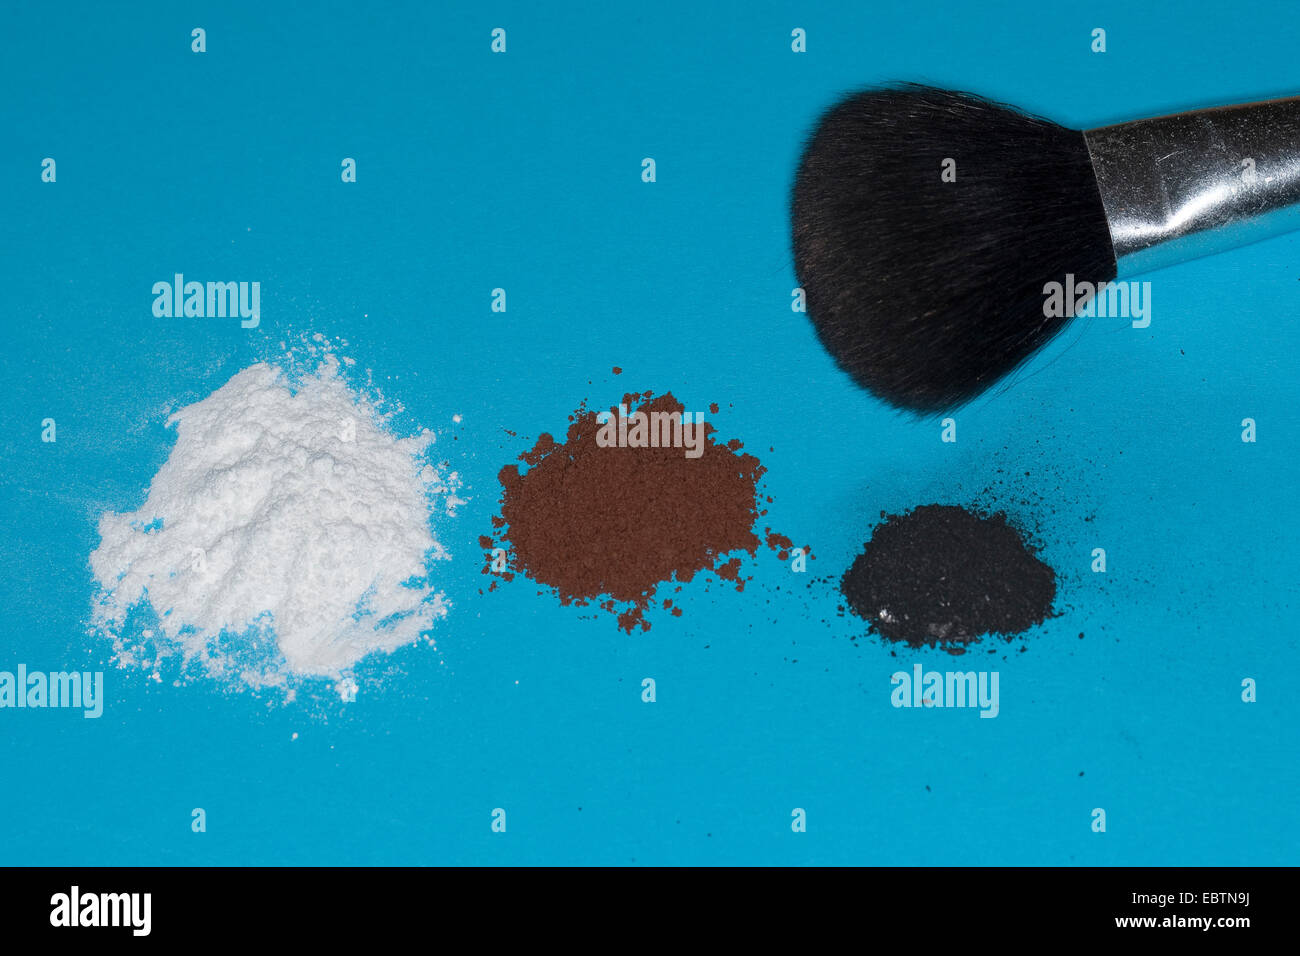 material for taking fingerprints: powder, cacao powder, graphite from a pencil - Stock Image